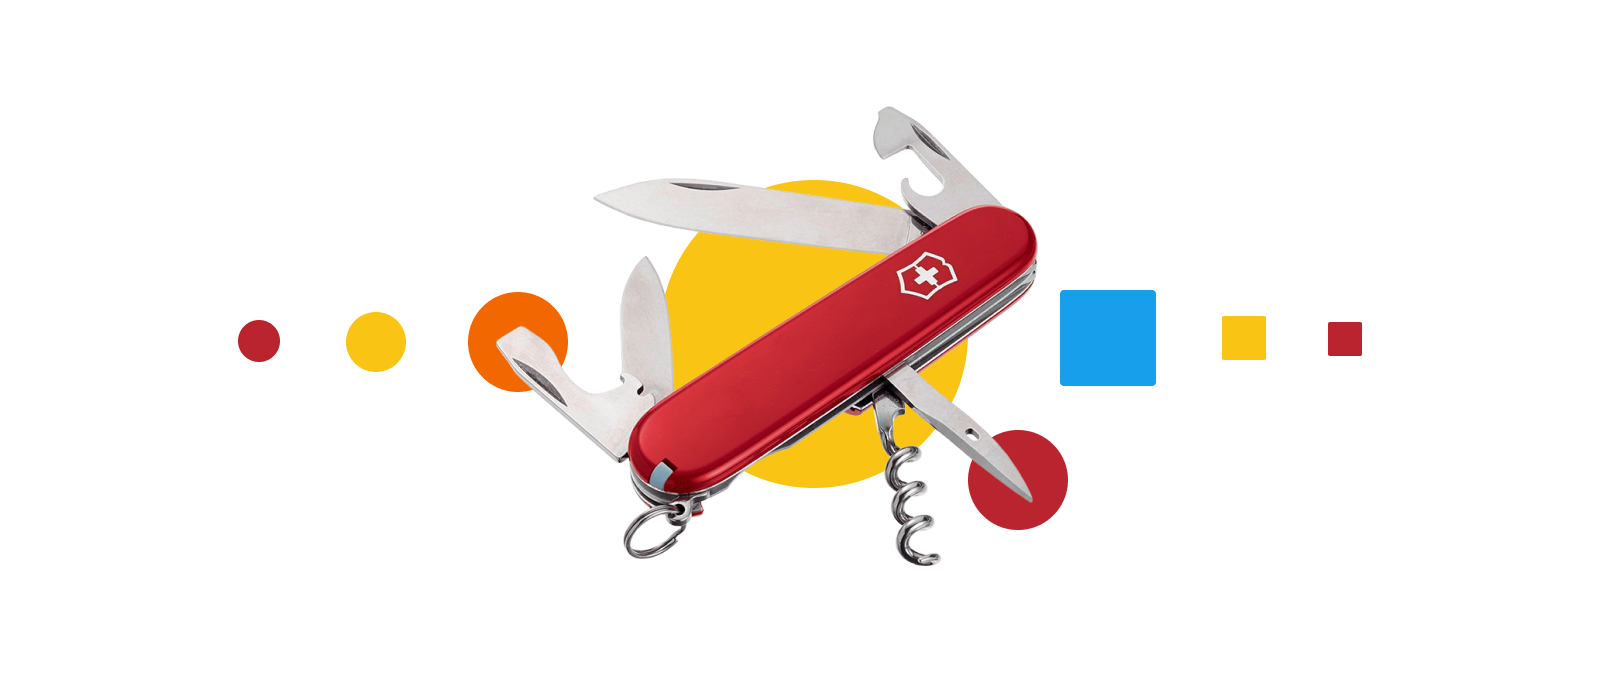 The Swiss knife complex: How a features focus approach can harm your product